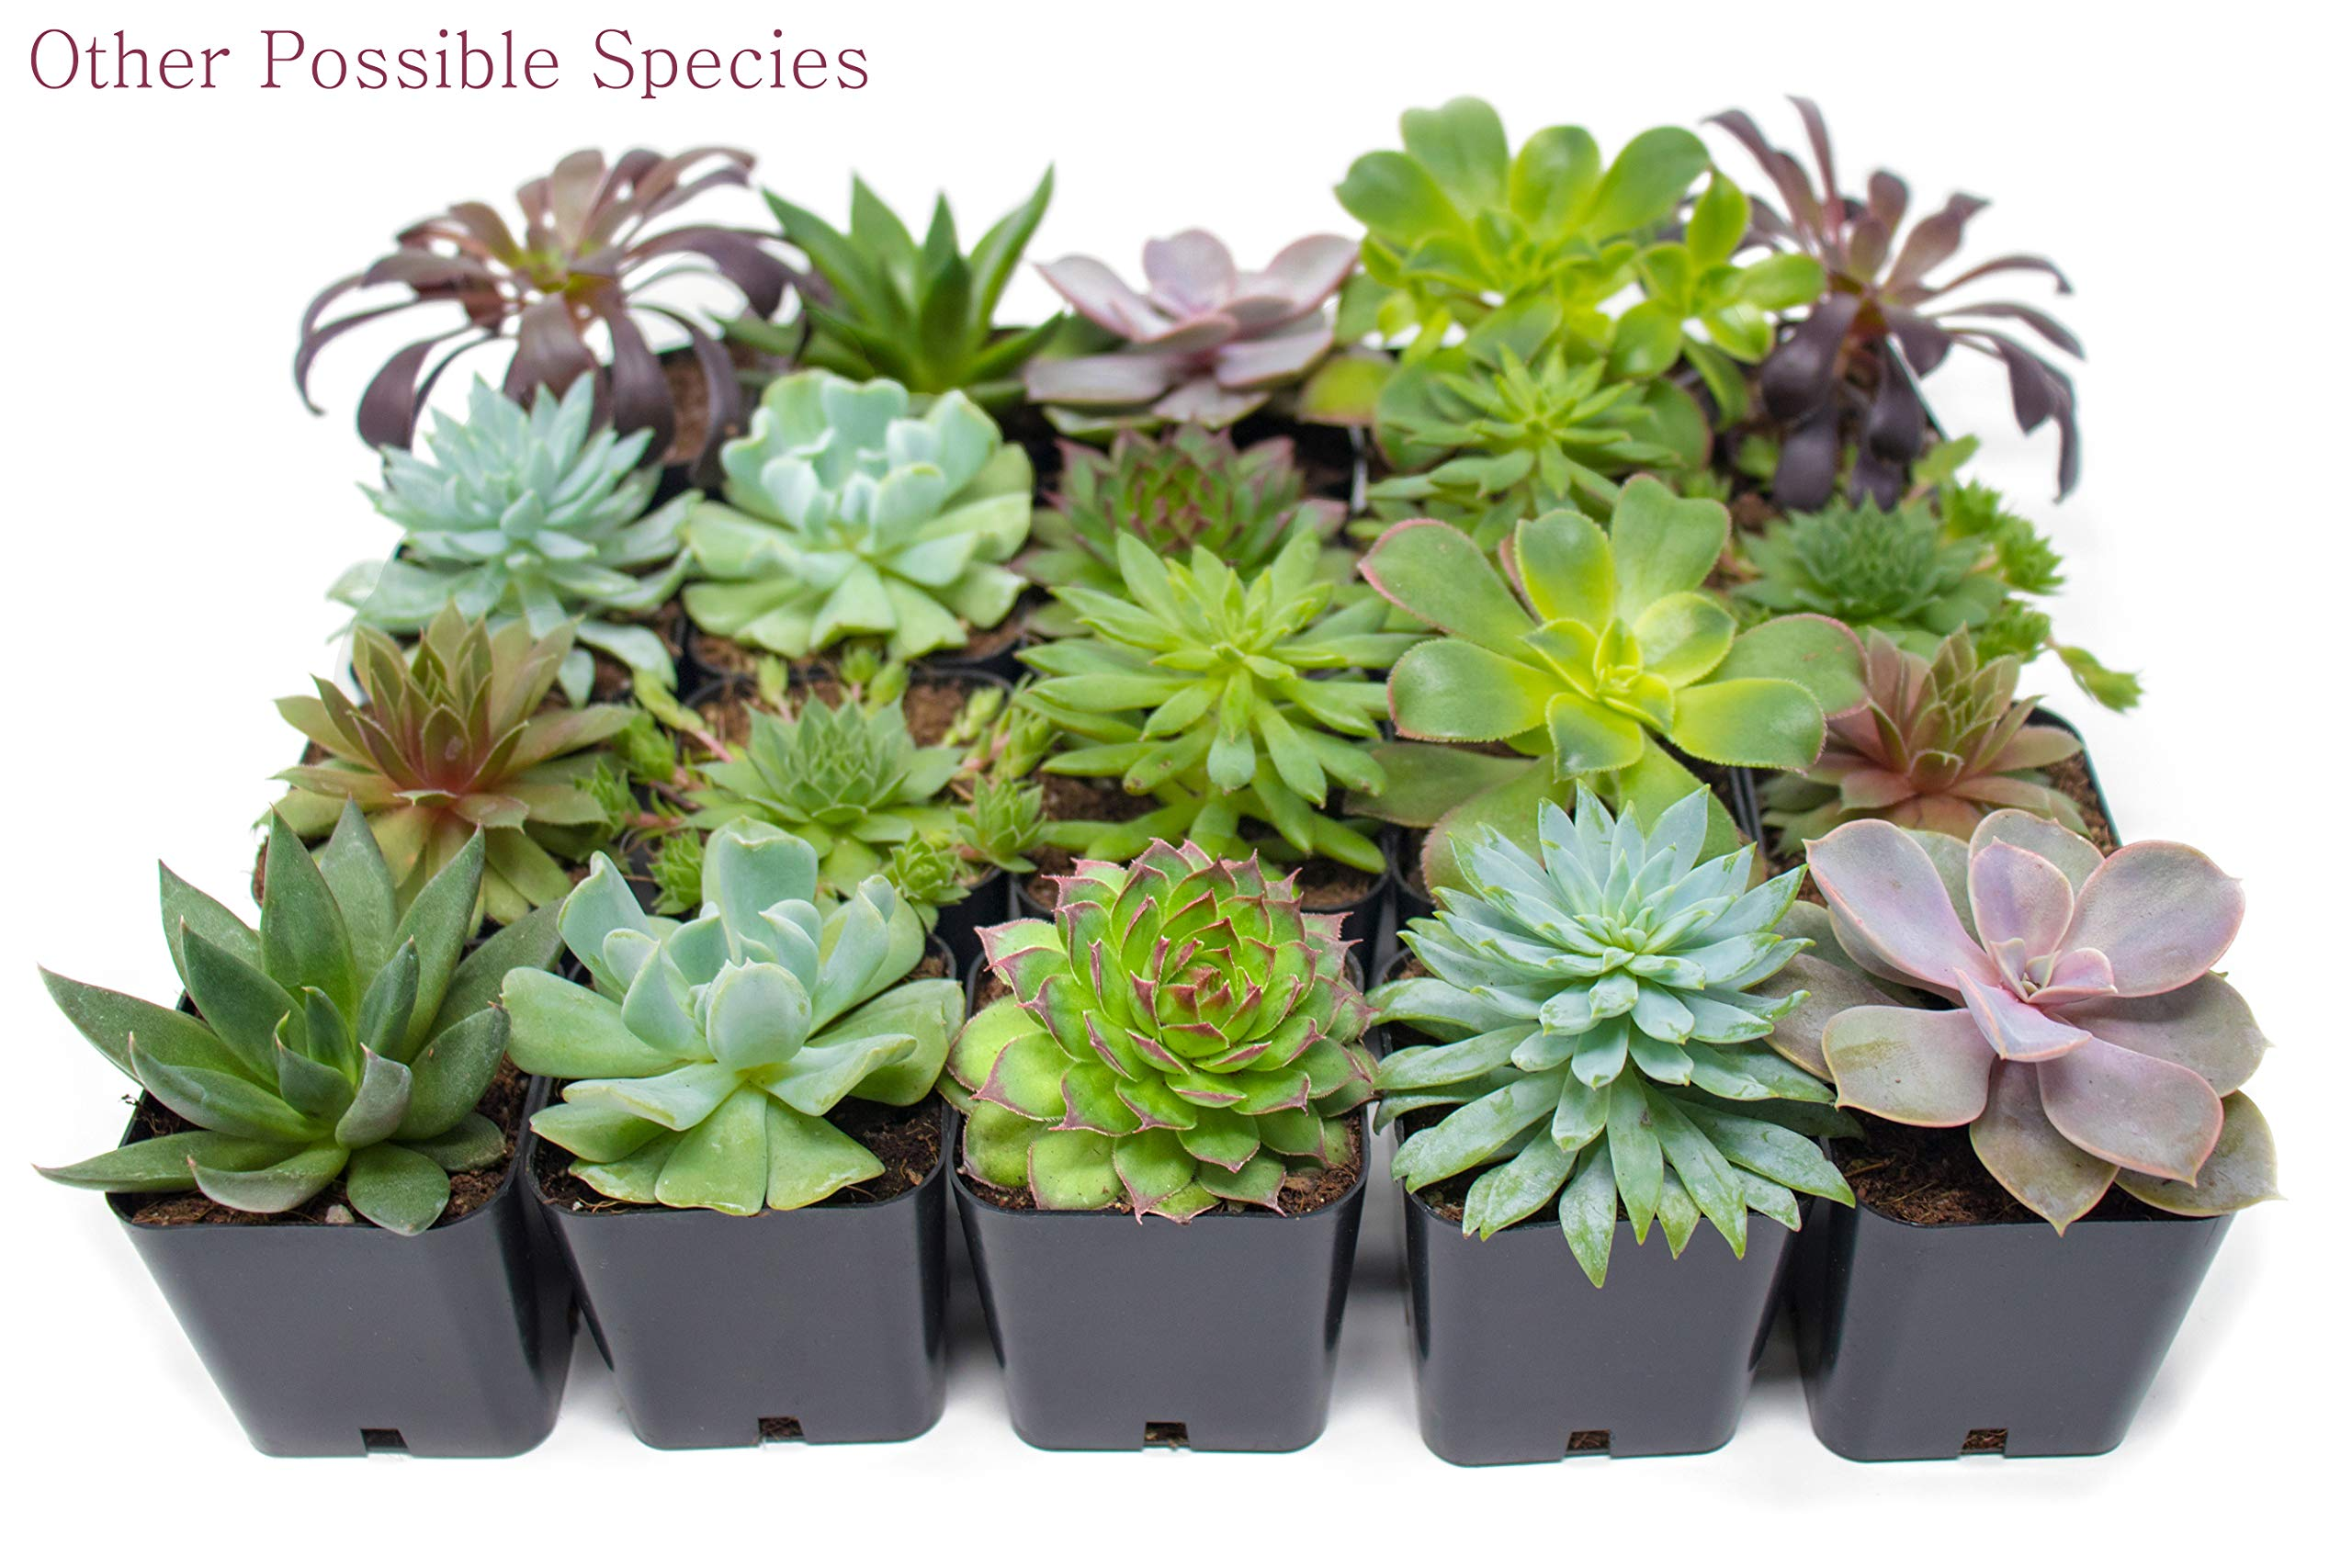 Succulent Plants (5 Pack), Fully Rooted in Planter Pots with Soil -  Real Live Potted Succulents / Unique Indoor Cactus Decor by Plants for Pets 8 HAND SELECTED: Every pack of succulents we send is hand-picked. You will receive a unique collection of species that are FULLY ROOTED IN 2 INCH POTS, which will be similar to the product photos (see photo 2 for scale). Note that we rotate our nursery stock often, so the exact species we send changes every week. THE EASIEST HOUSE PLANTS: More appealing than artificial plastic or fake faux plants, and care is a cinch. If you think you can't keep houseplants alive, you're wrong; our succulents don't require fertilizer and can be planted in a decorative pot of your choice within seconds. DIY HOME DECOR: The possibilities are only limited by your imagination; display them in a plant holder, a wall mount, a geometric glass vase, or even in a live wreath. Because of their amazingly low care requirements, they can even make the perfect desk centerpiece for your office.